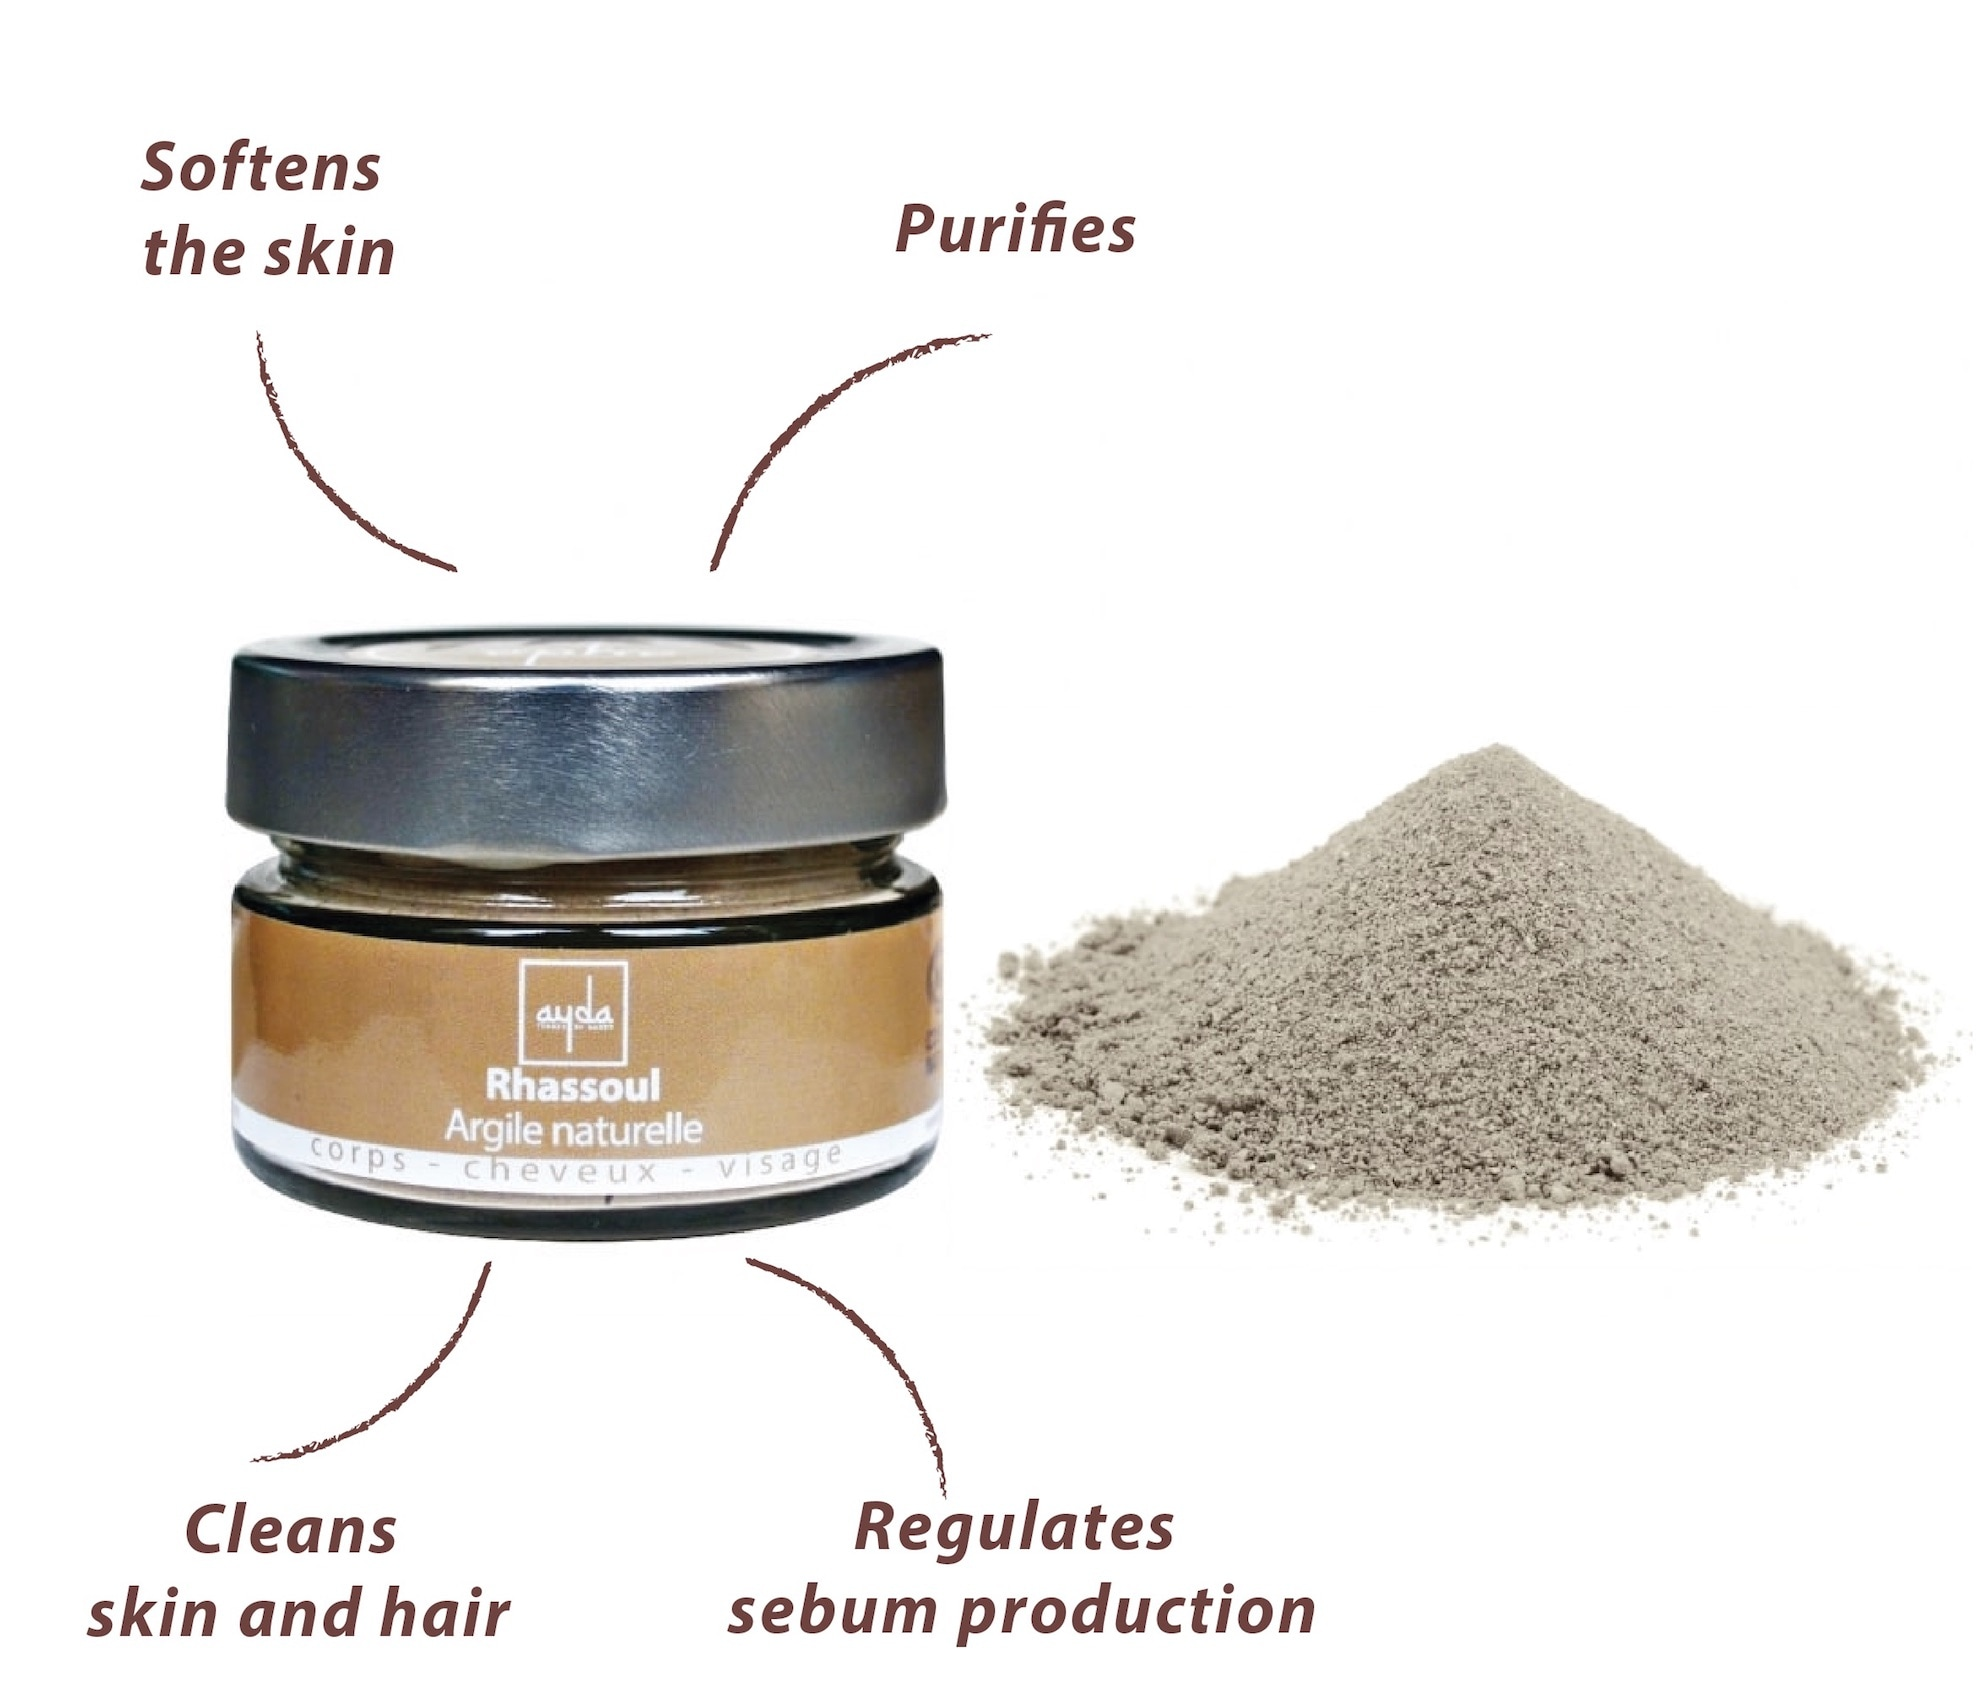 rhassoul clay benefits